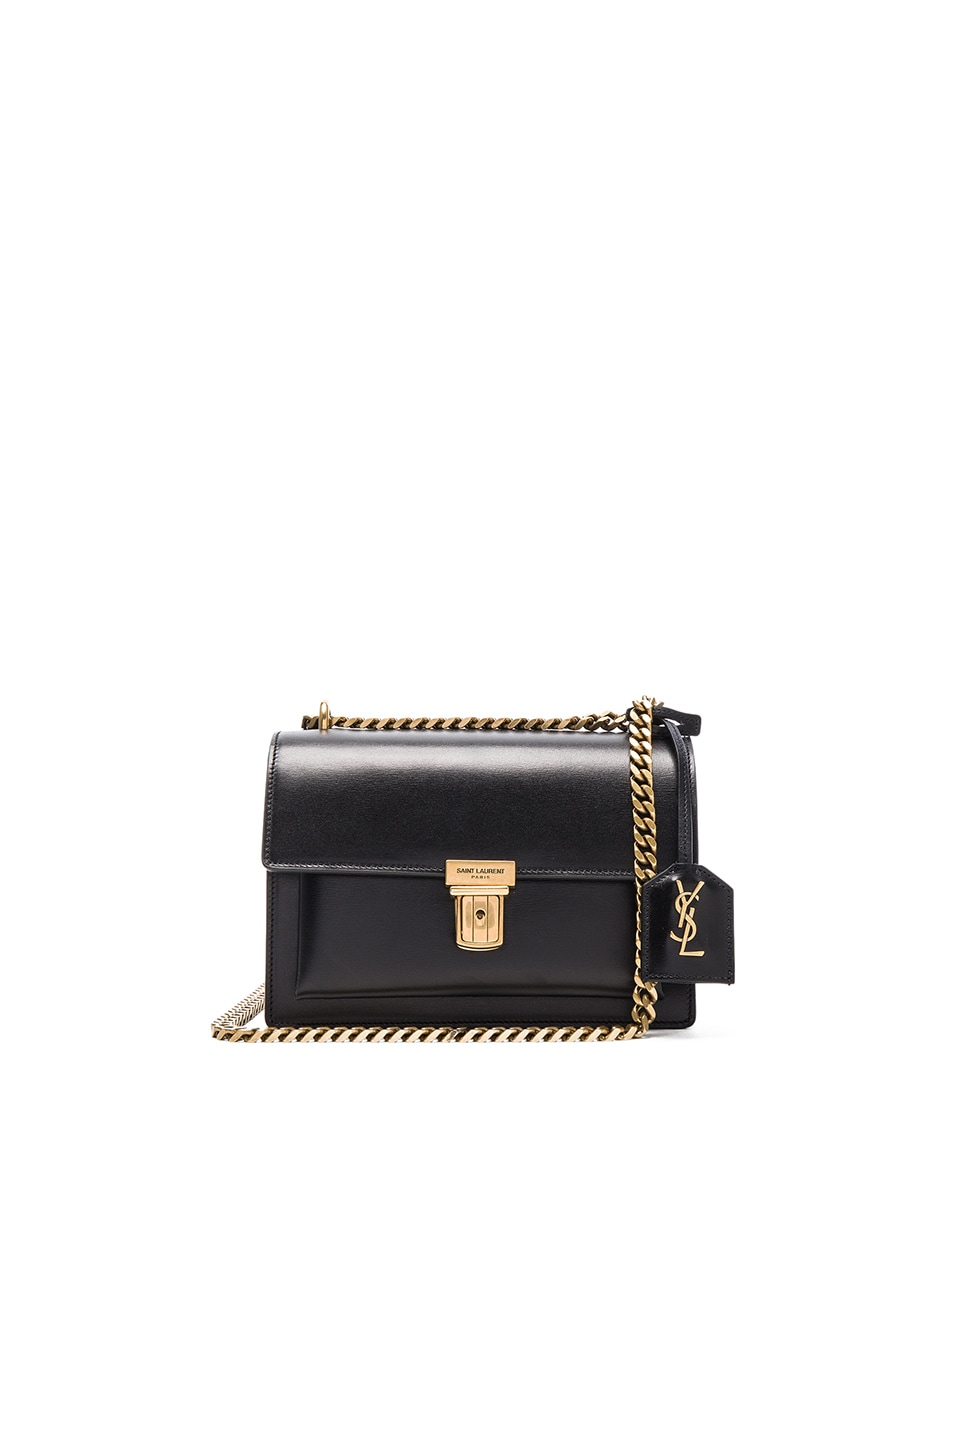 e2f49bd7cb8f Image 1 of Saint Laurent Small Chain High School Bag in Black